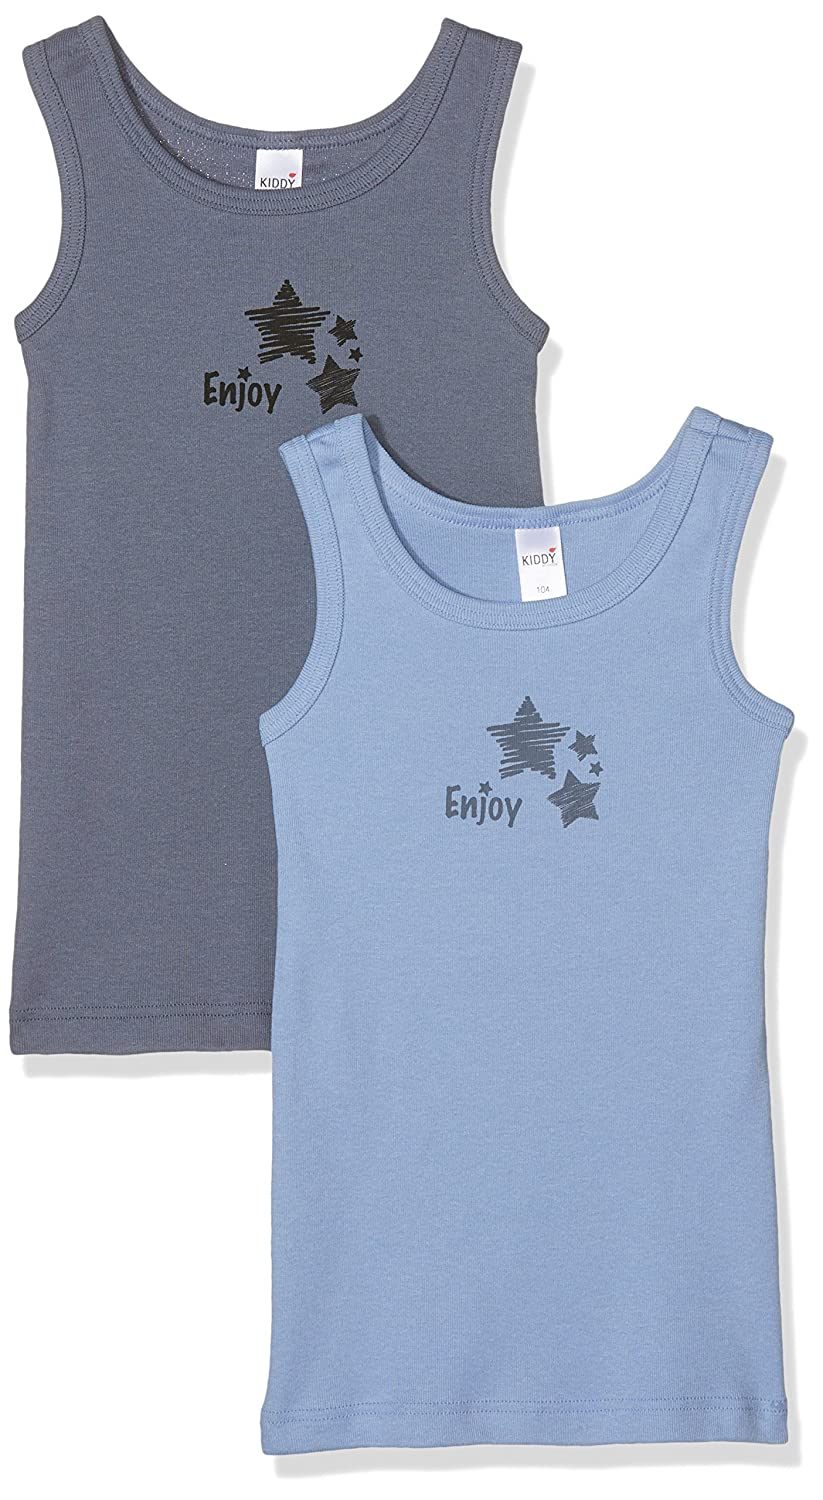 HUBER Jungen Top Boys Tank Dp Grey (Grey/Mix 014053) 98 014186